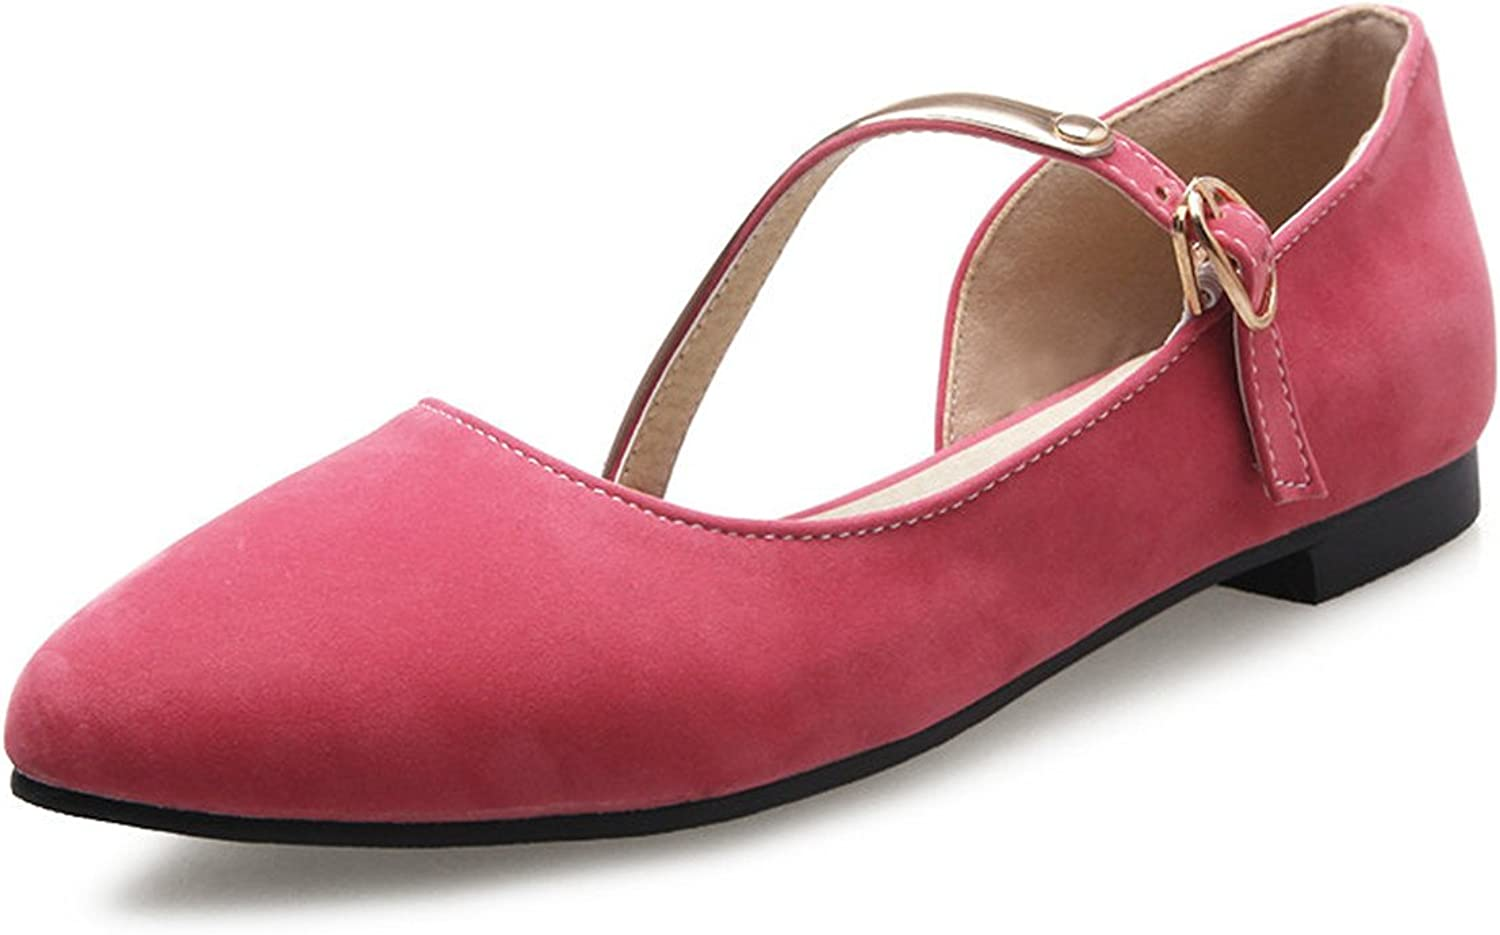 Henraly Women Flats Popular Pointed Toe Concise Flats Comfortable Black Beige Pink bluee shoes Woman US Size 4-14